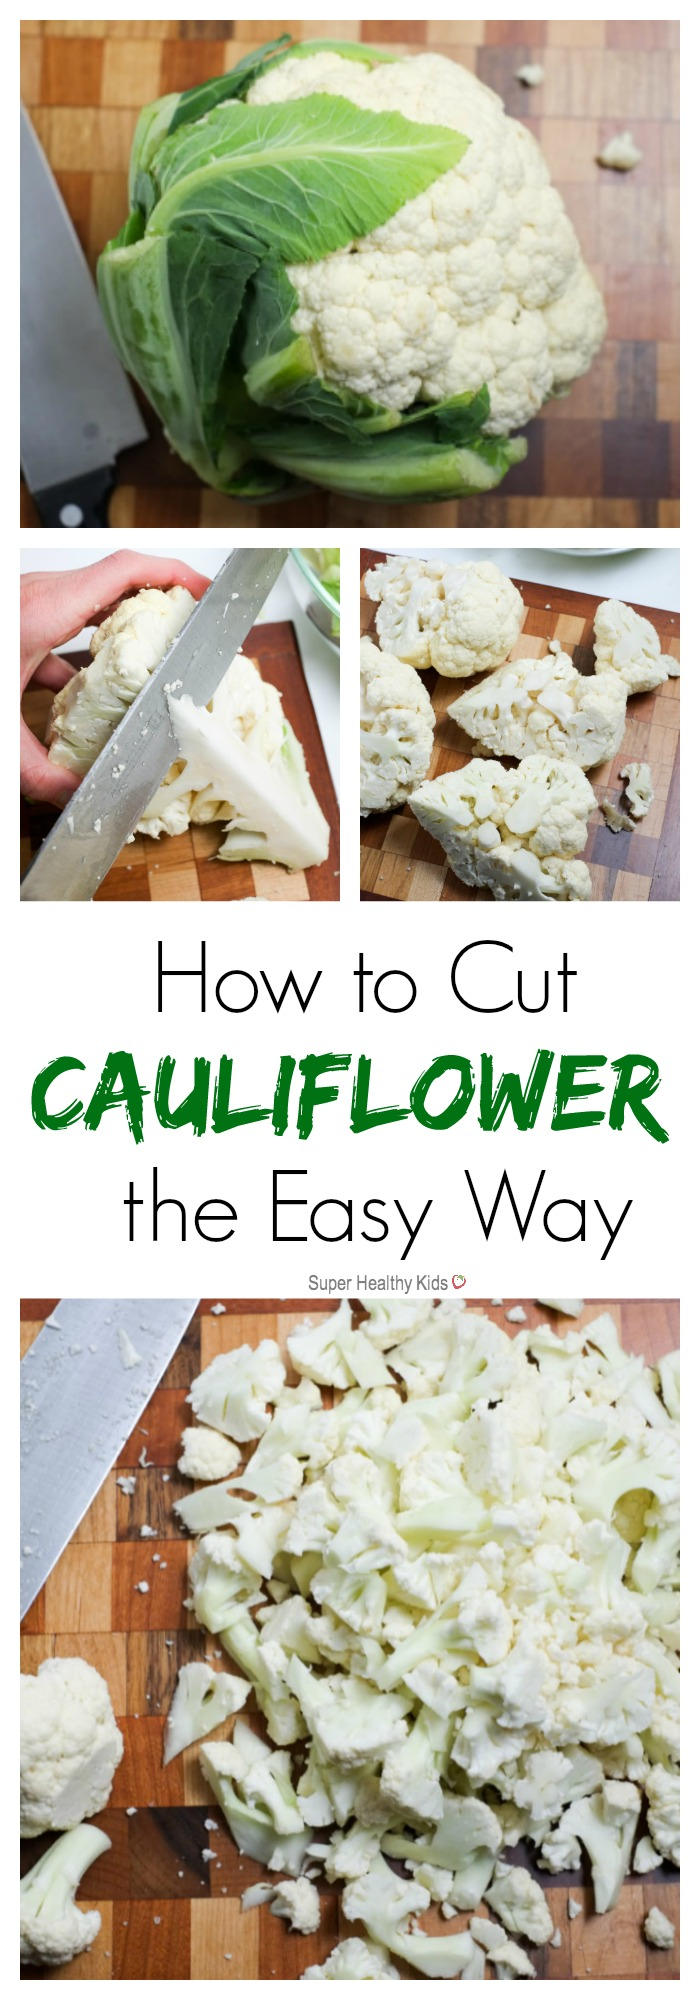 How to Cut Cauliflower The Easy Way| Super Healthy Kids | Food and Drink http://www.superhealthykids.com/how-to-cut-cauliflower/